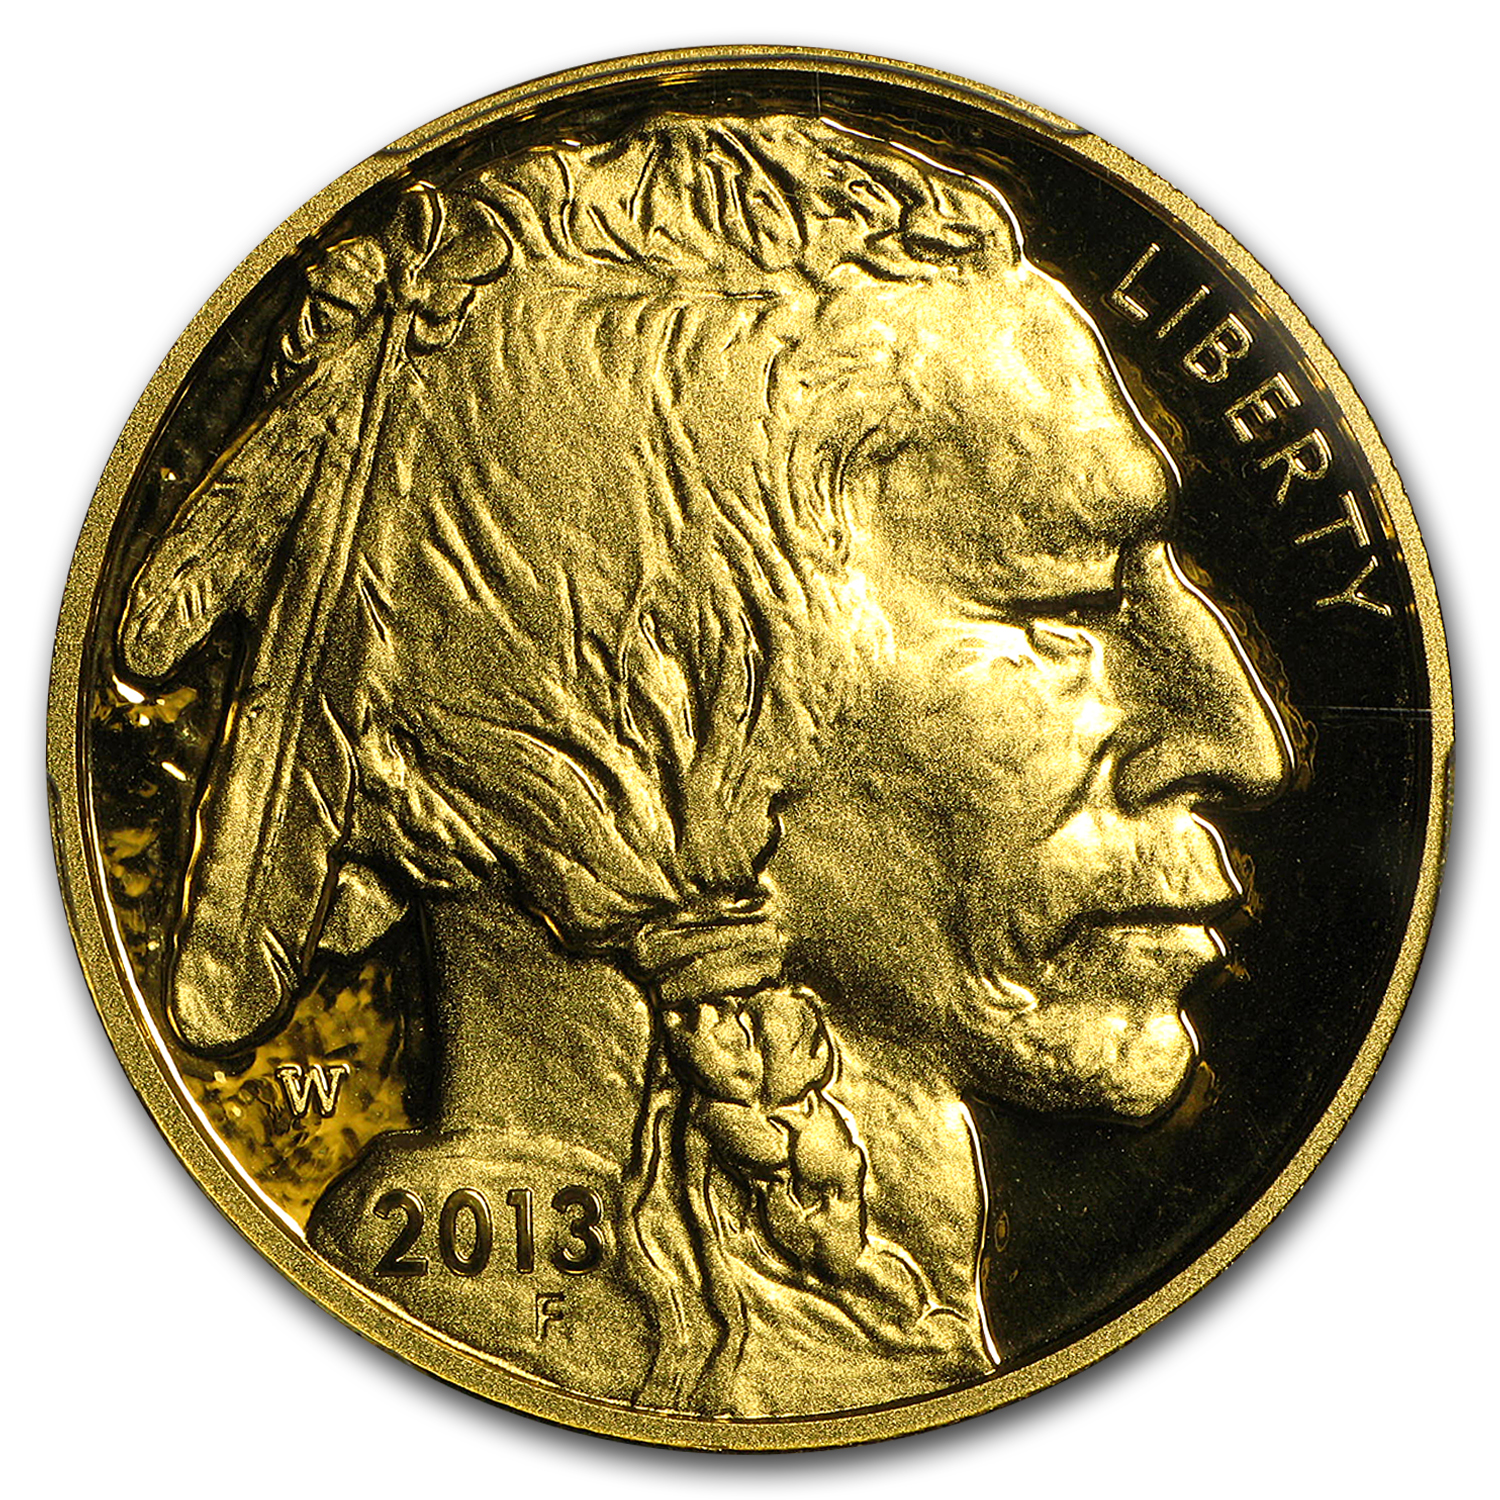 2013-W 1 oz Proof Gold Buffalo PR-70 PCGS